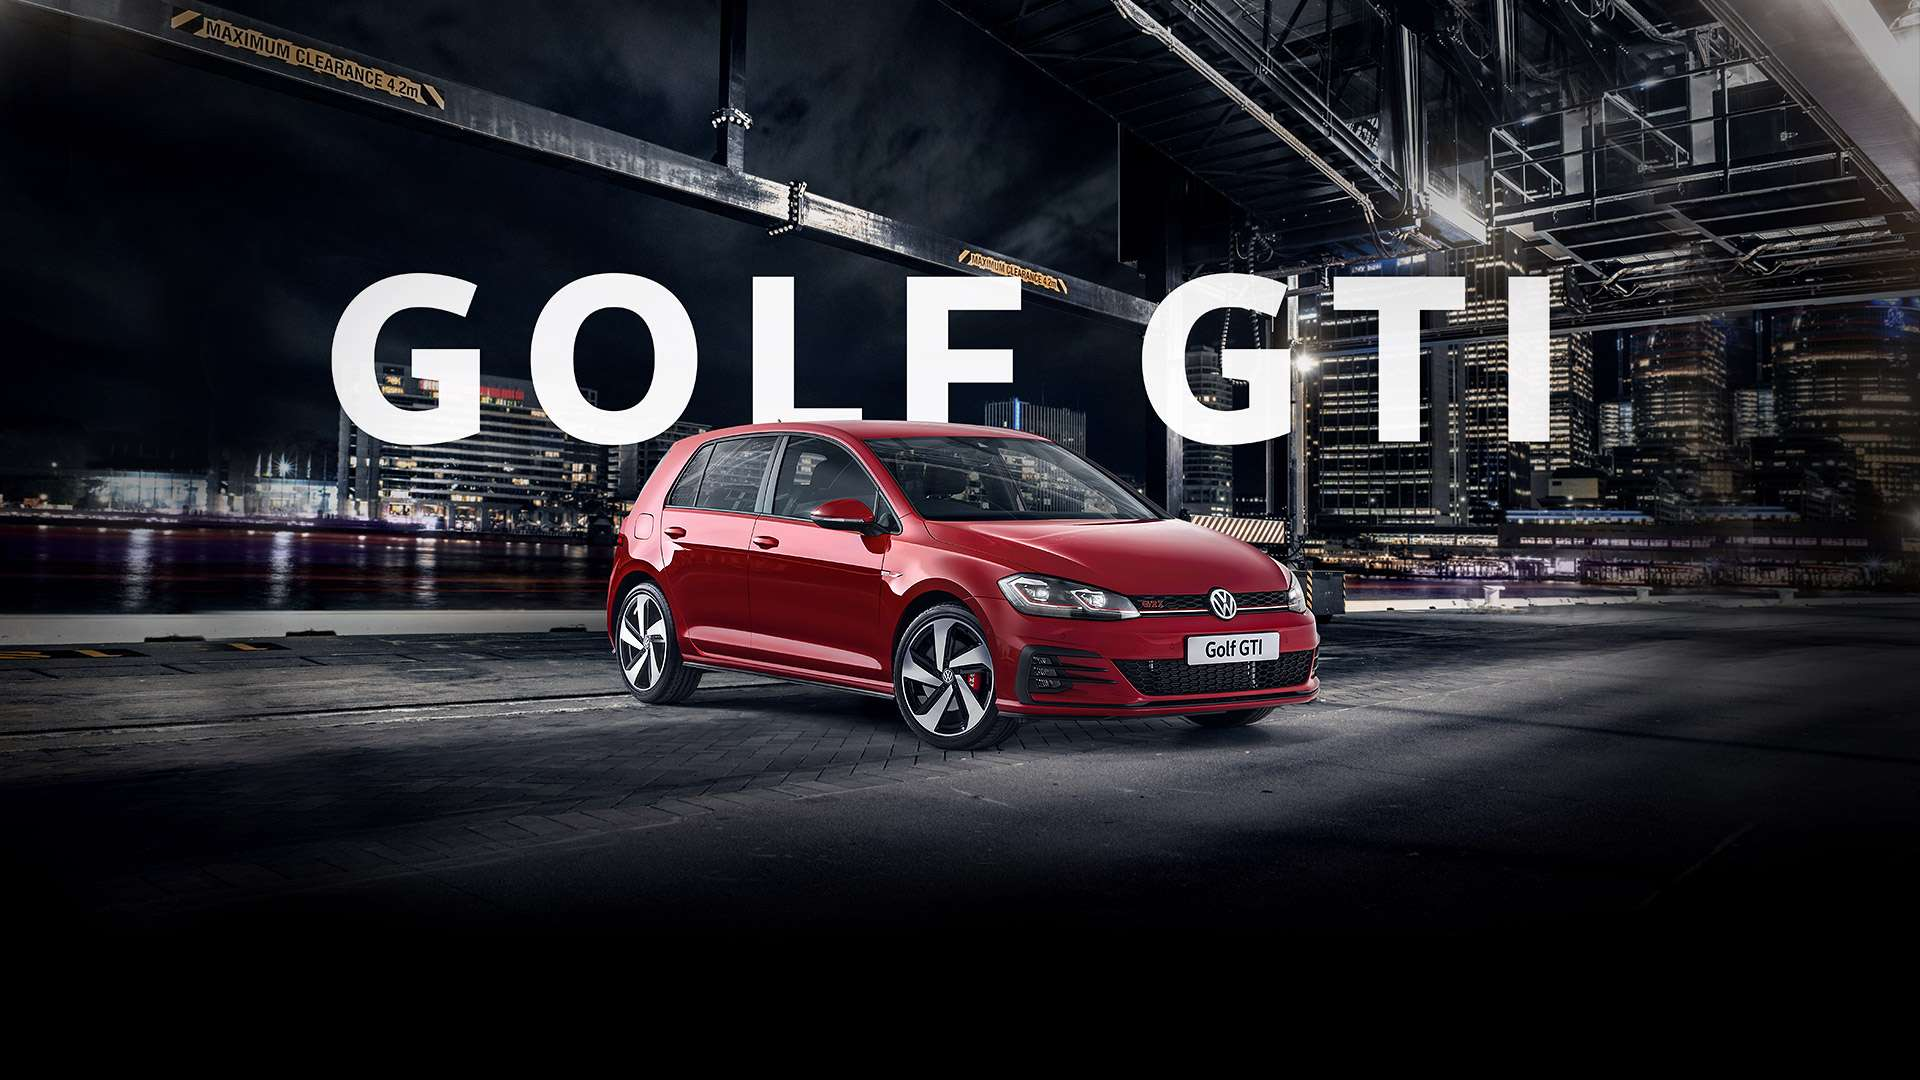 Golf GTi The original hot hatch.